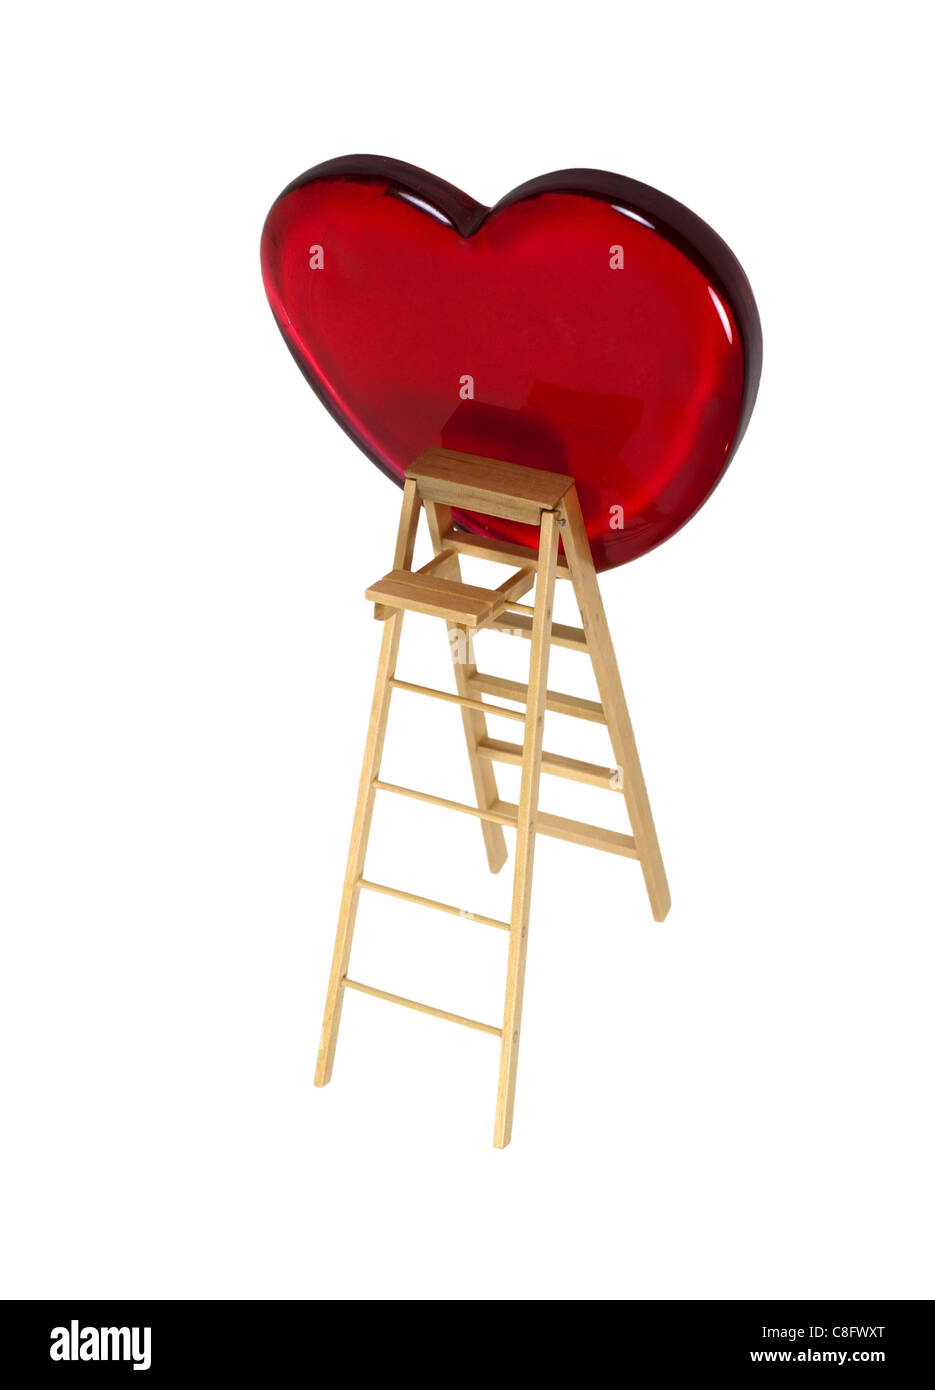 Love is an upward climb shown by a ladder leaning on a red heart - path included - Stock Image